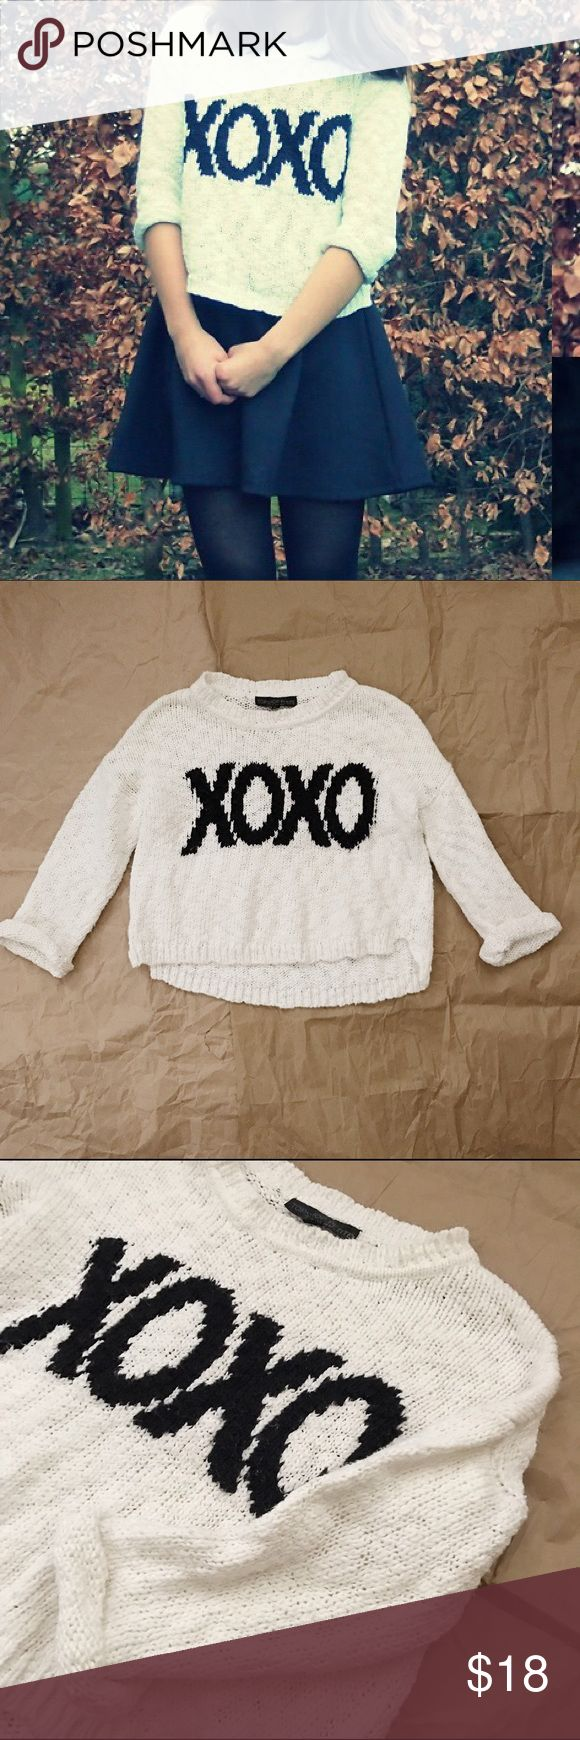 TOPSHOP XOXO White Sweater In great condition. Topshop PETITE Sweaters